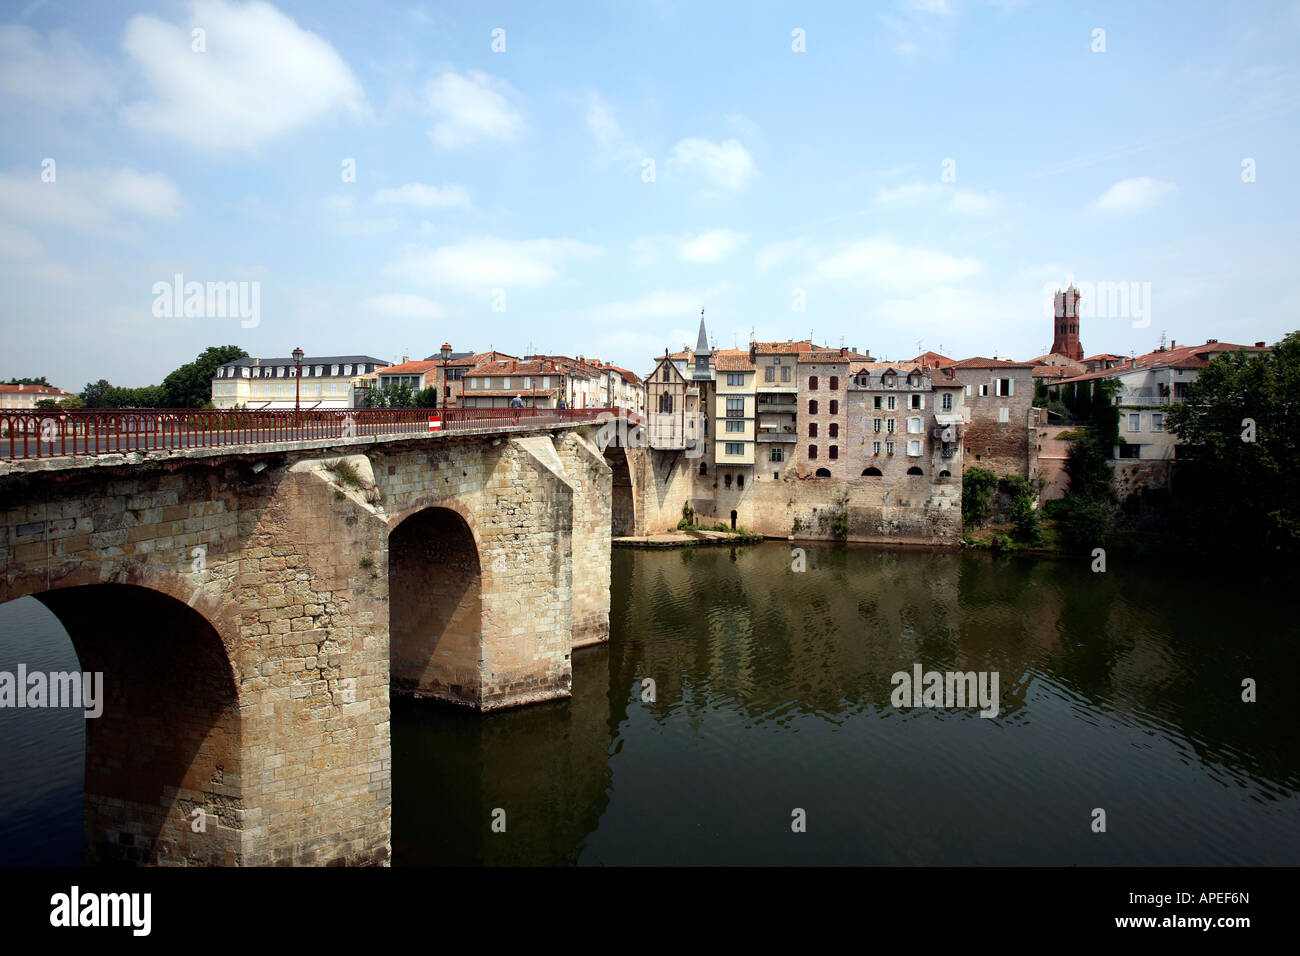 france aquitaine lot et garonne villeneuve sur lot a view of the stock photo royalty free image. Black Bedroom Furniture Sets. Home Design Ideas